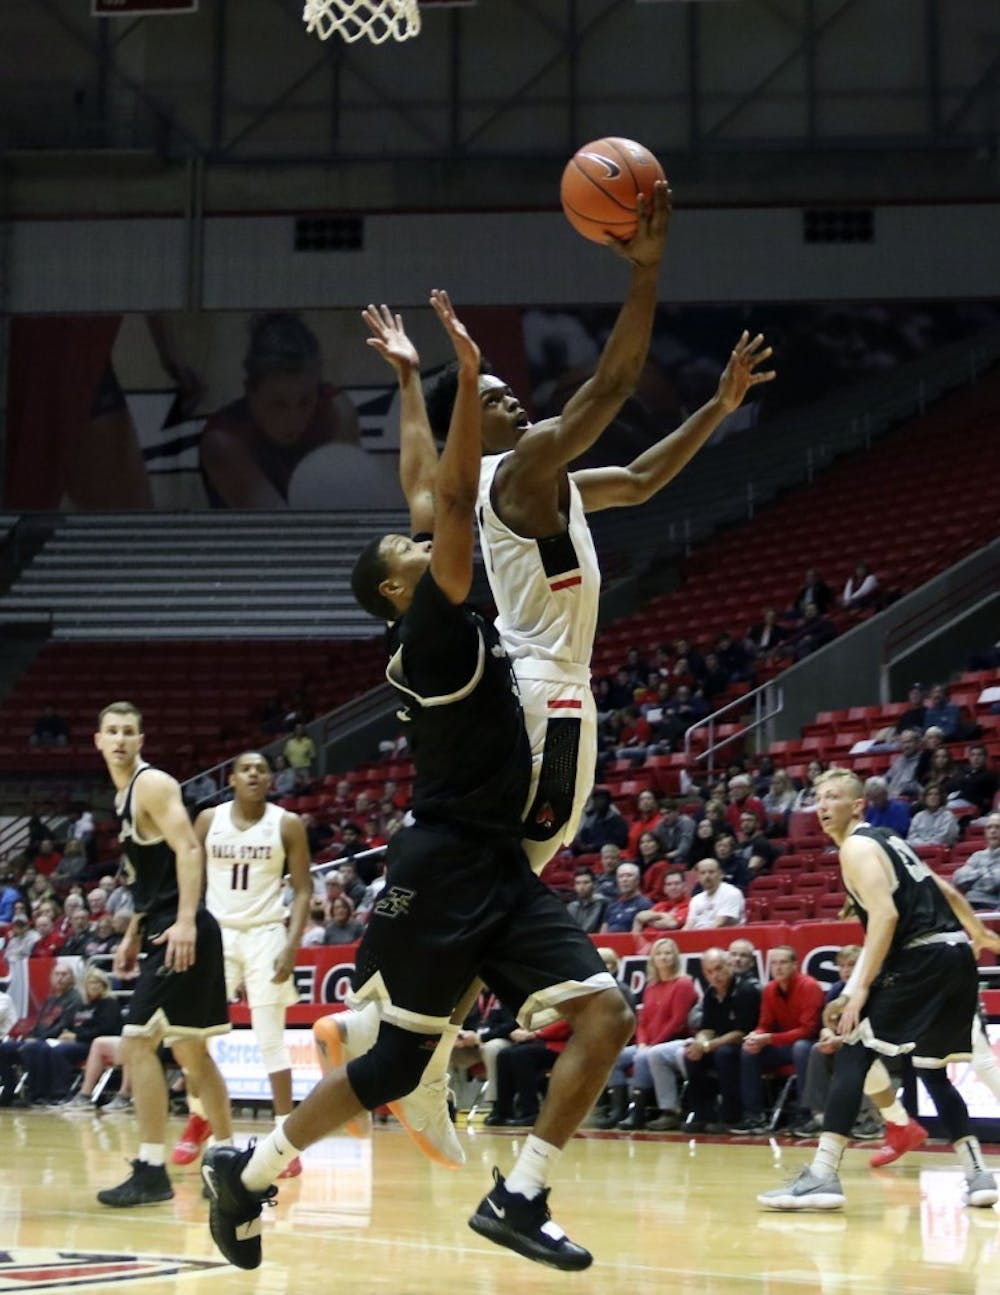 <p>Ball State redshirt junior guard K.J. Walton goes for a layup while being guarded by the University of Indianapolis' CJ Hardaway during the Cardinals' exhibition game against the Greyhounds Nov. 2, 2018, in John E. Worthen Arena. Walton scored 15 points. <strong>Paige Grider, DN</strong></p>